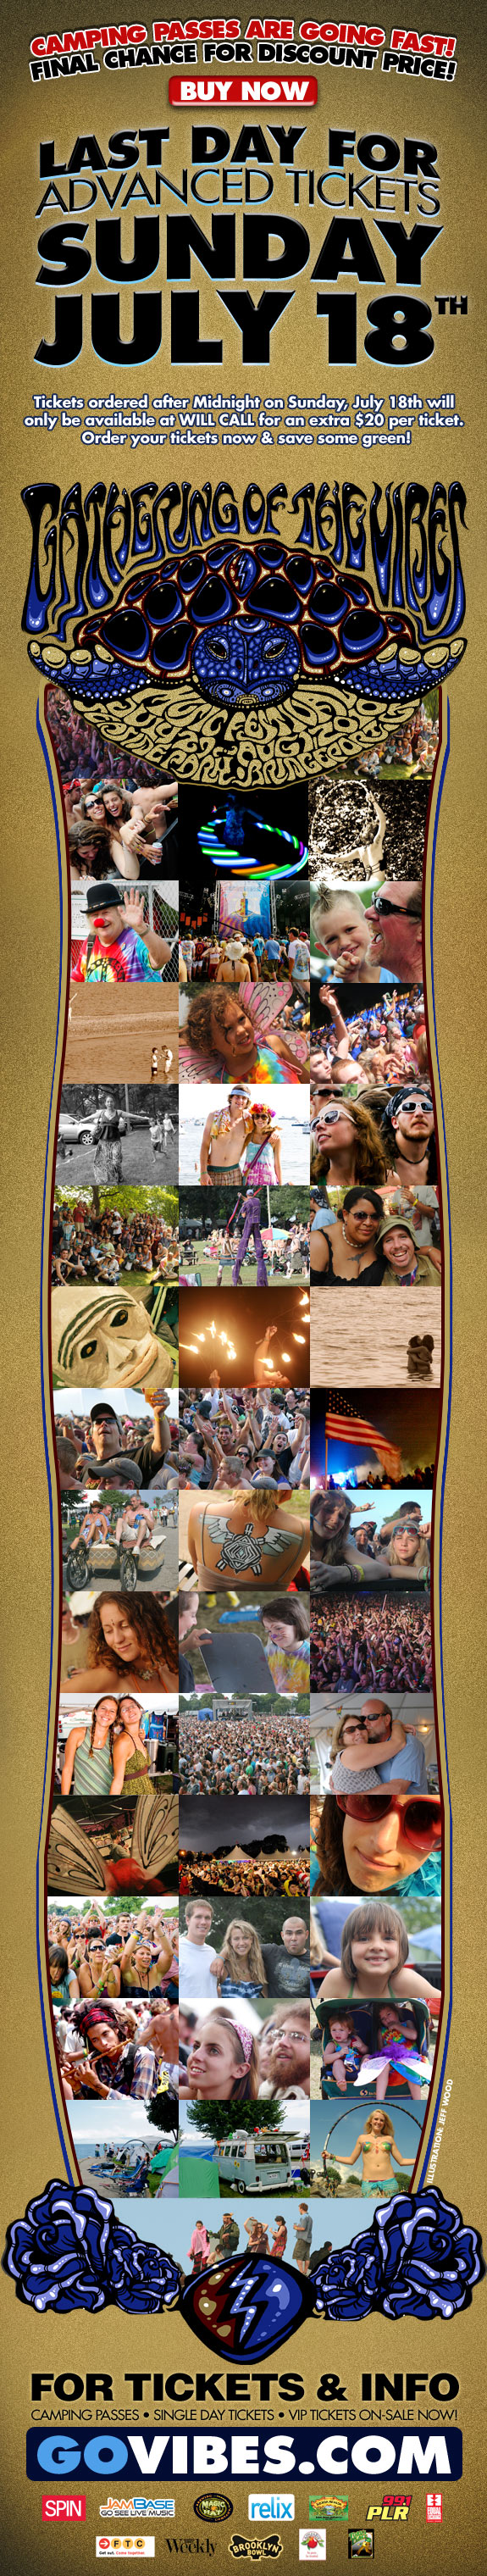 Gathering of the Vibes Tickets - Buy Before July 18 Save $20 Bucks